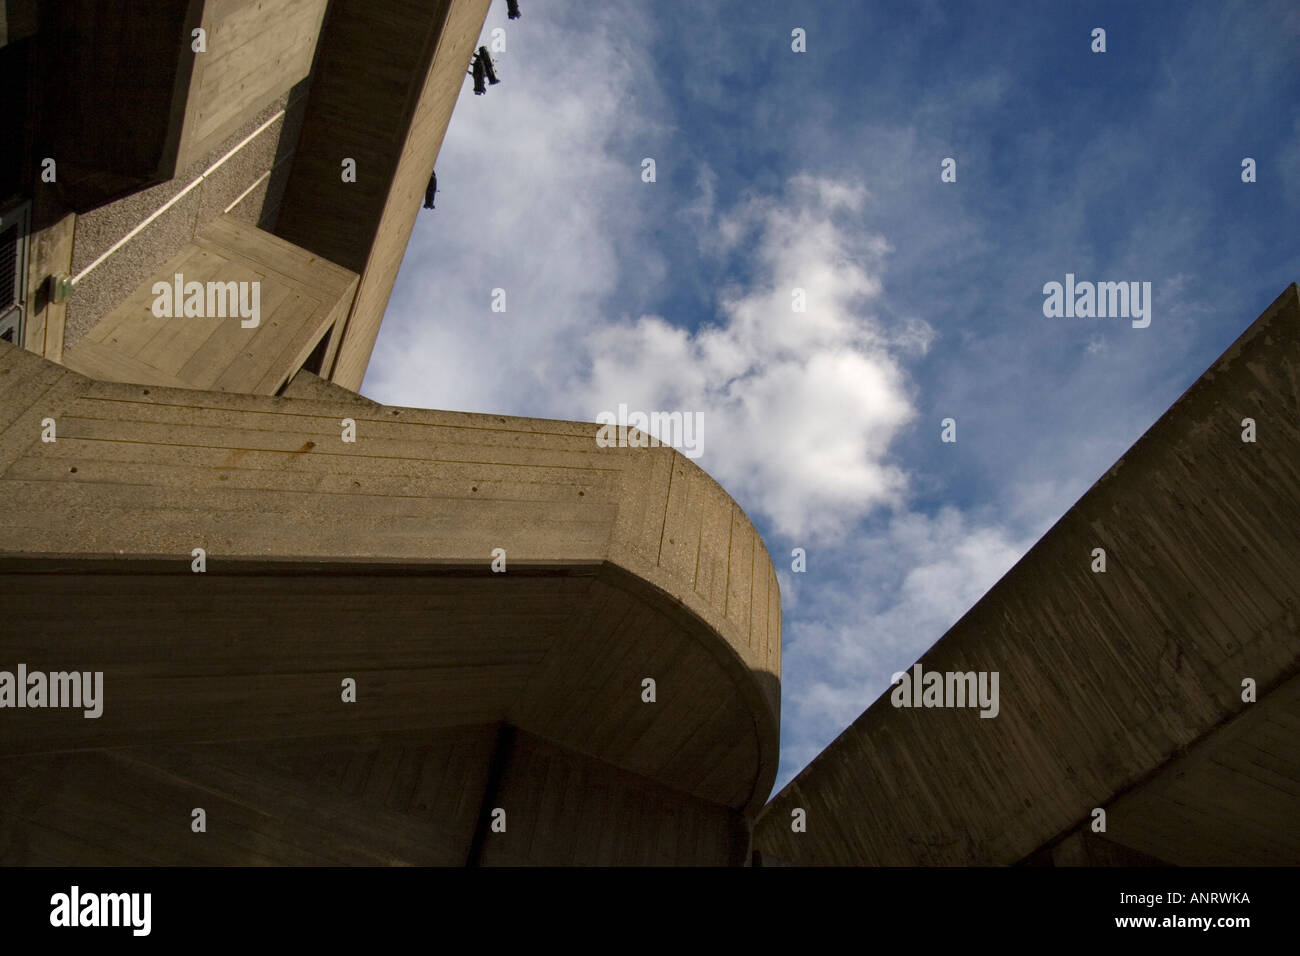 an abstract view of the brutalist concrete forms of the South bank Centre in London - Stock Image